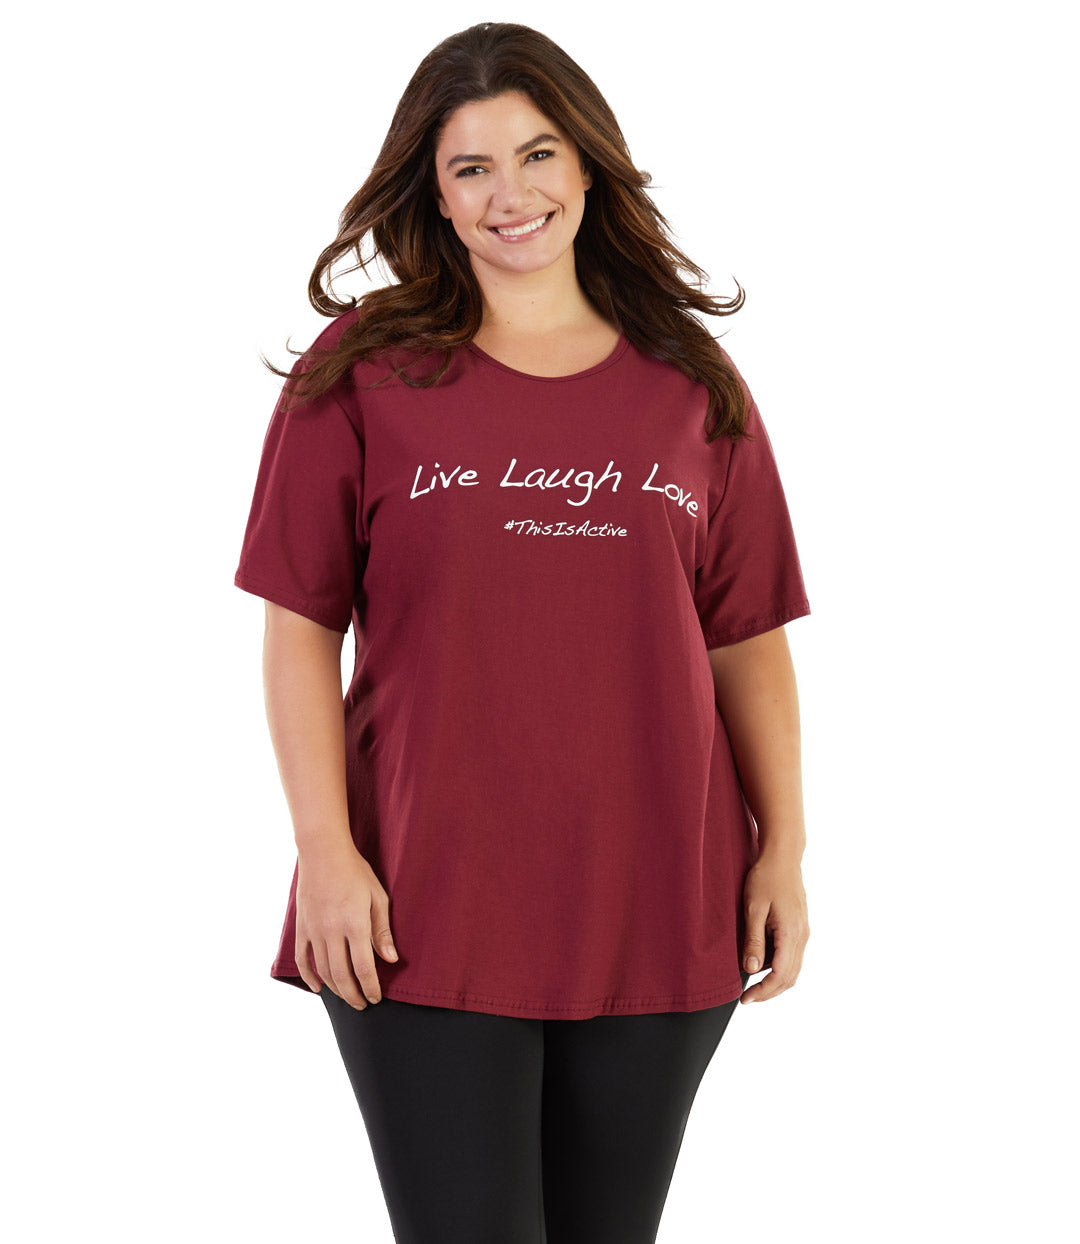 plus size activewear top tee